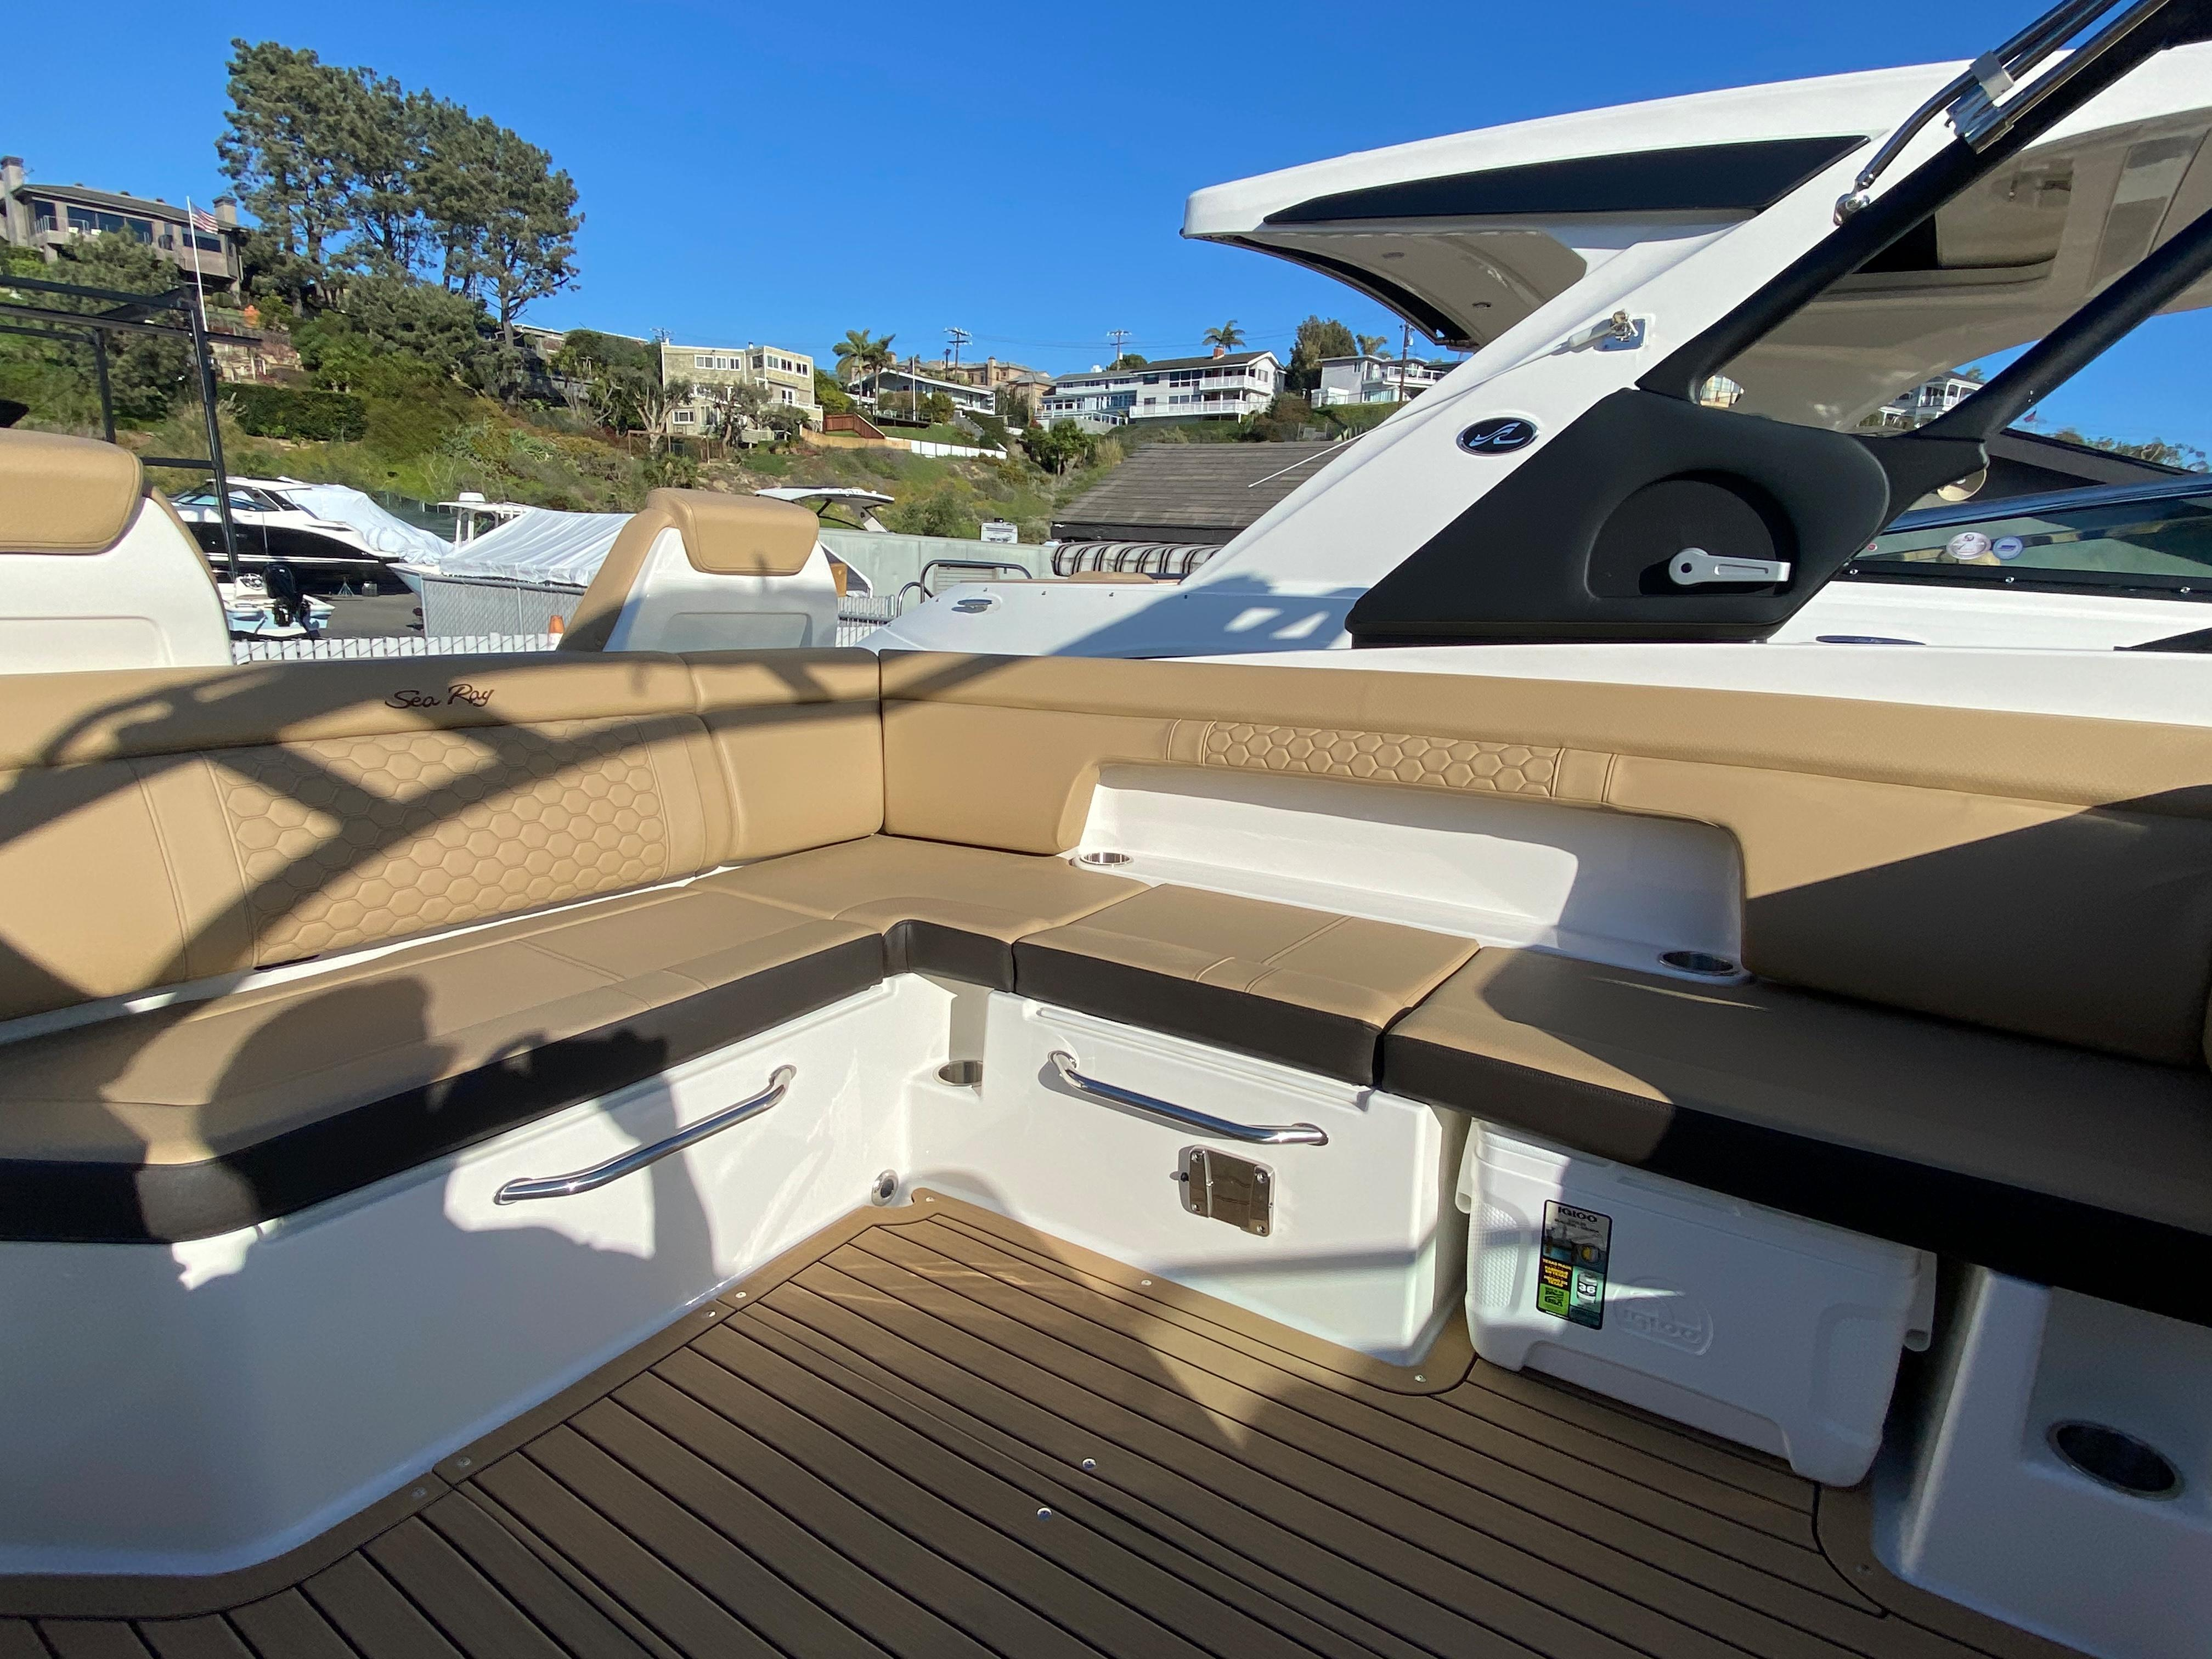 2021 Sea Ray SDX 290 OB #S1843A inventory image at Sun Country Coastal in Newport Beach